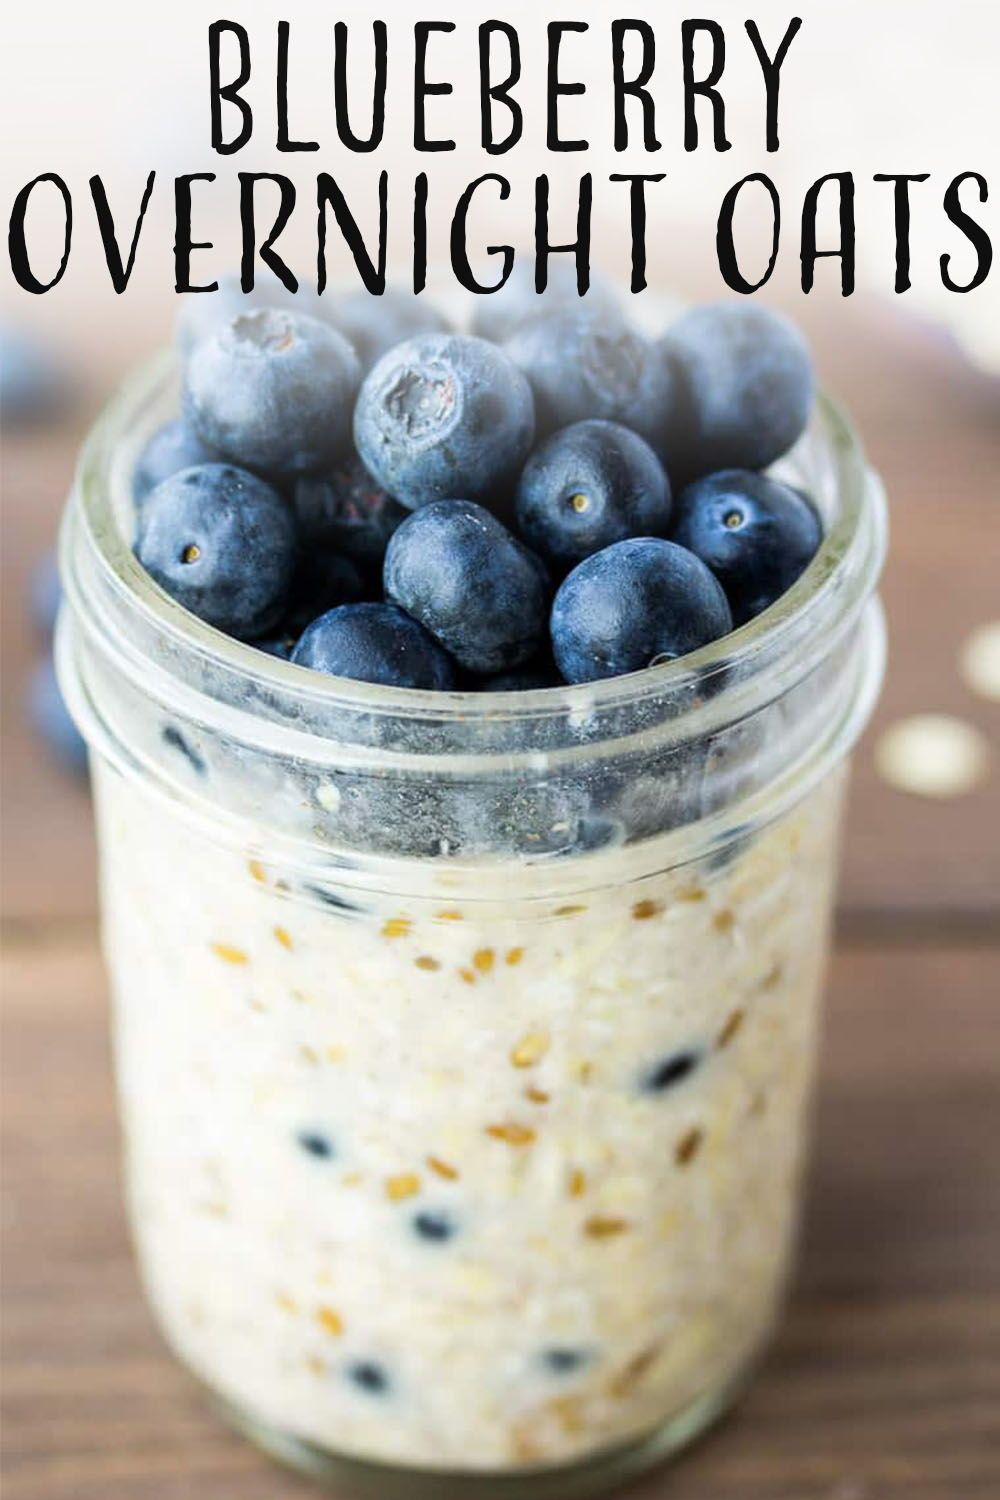 Blueberry Overnight Oats are the perfect breakfast recipe to simplify your mornings! They are a ...